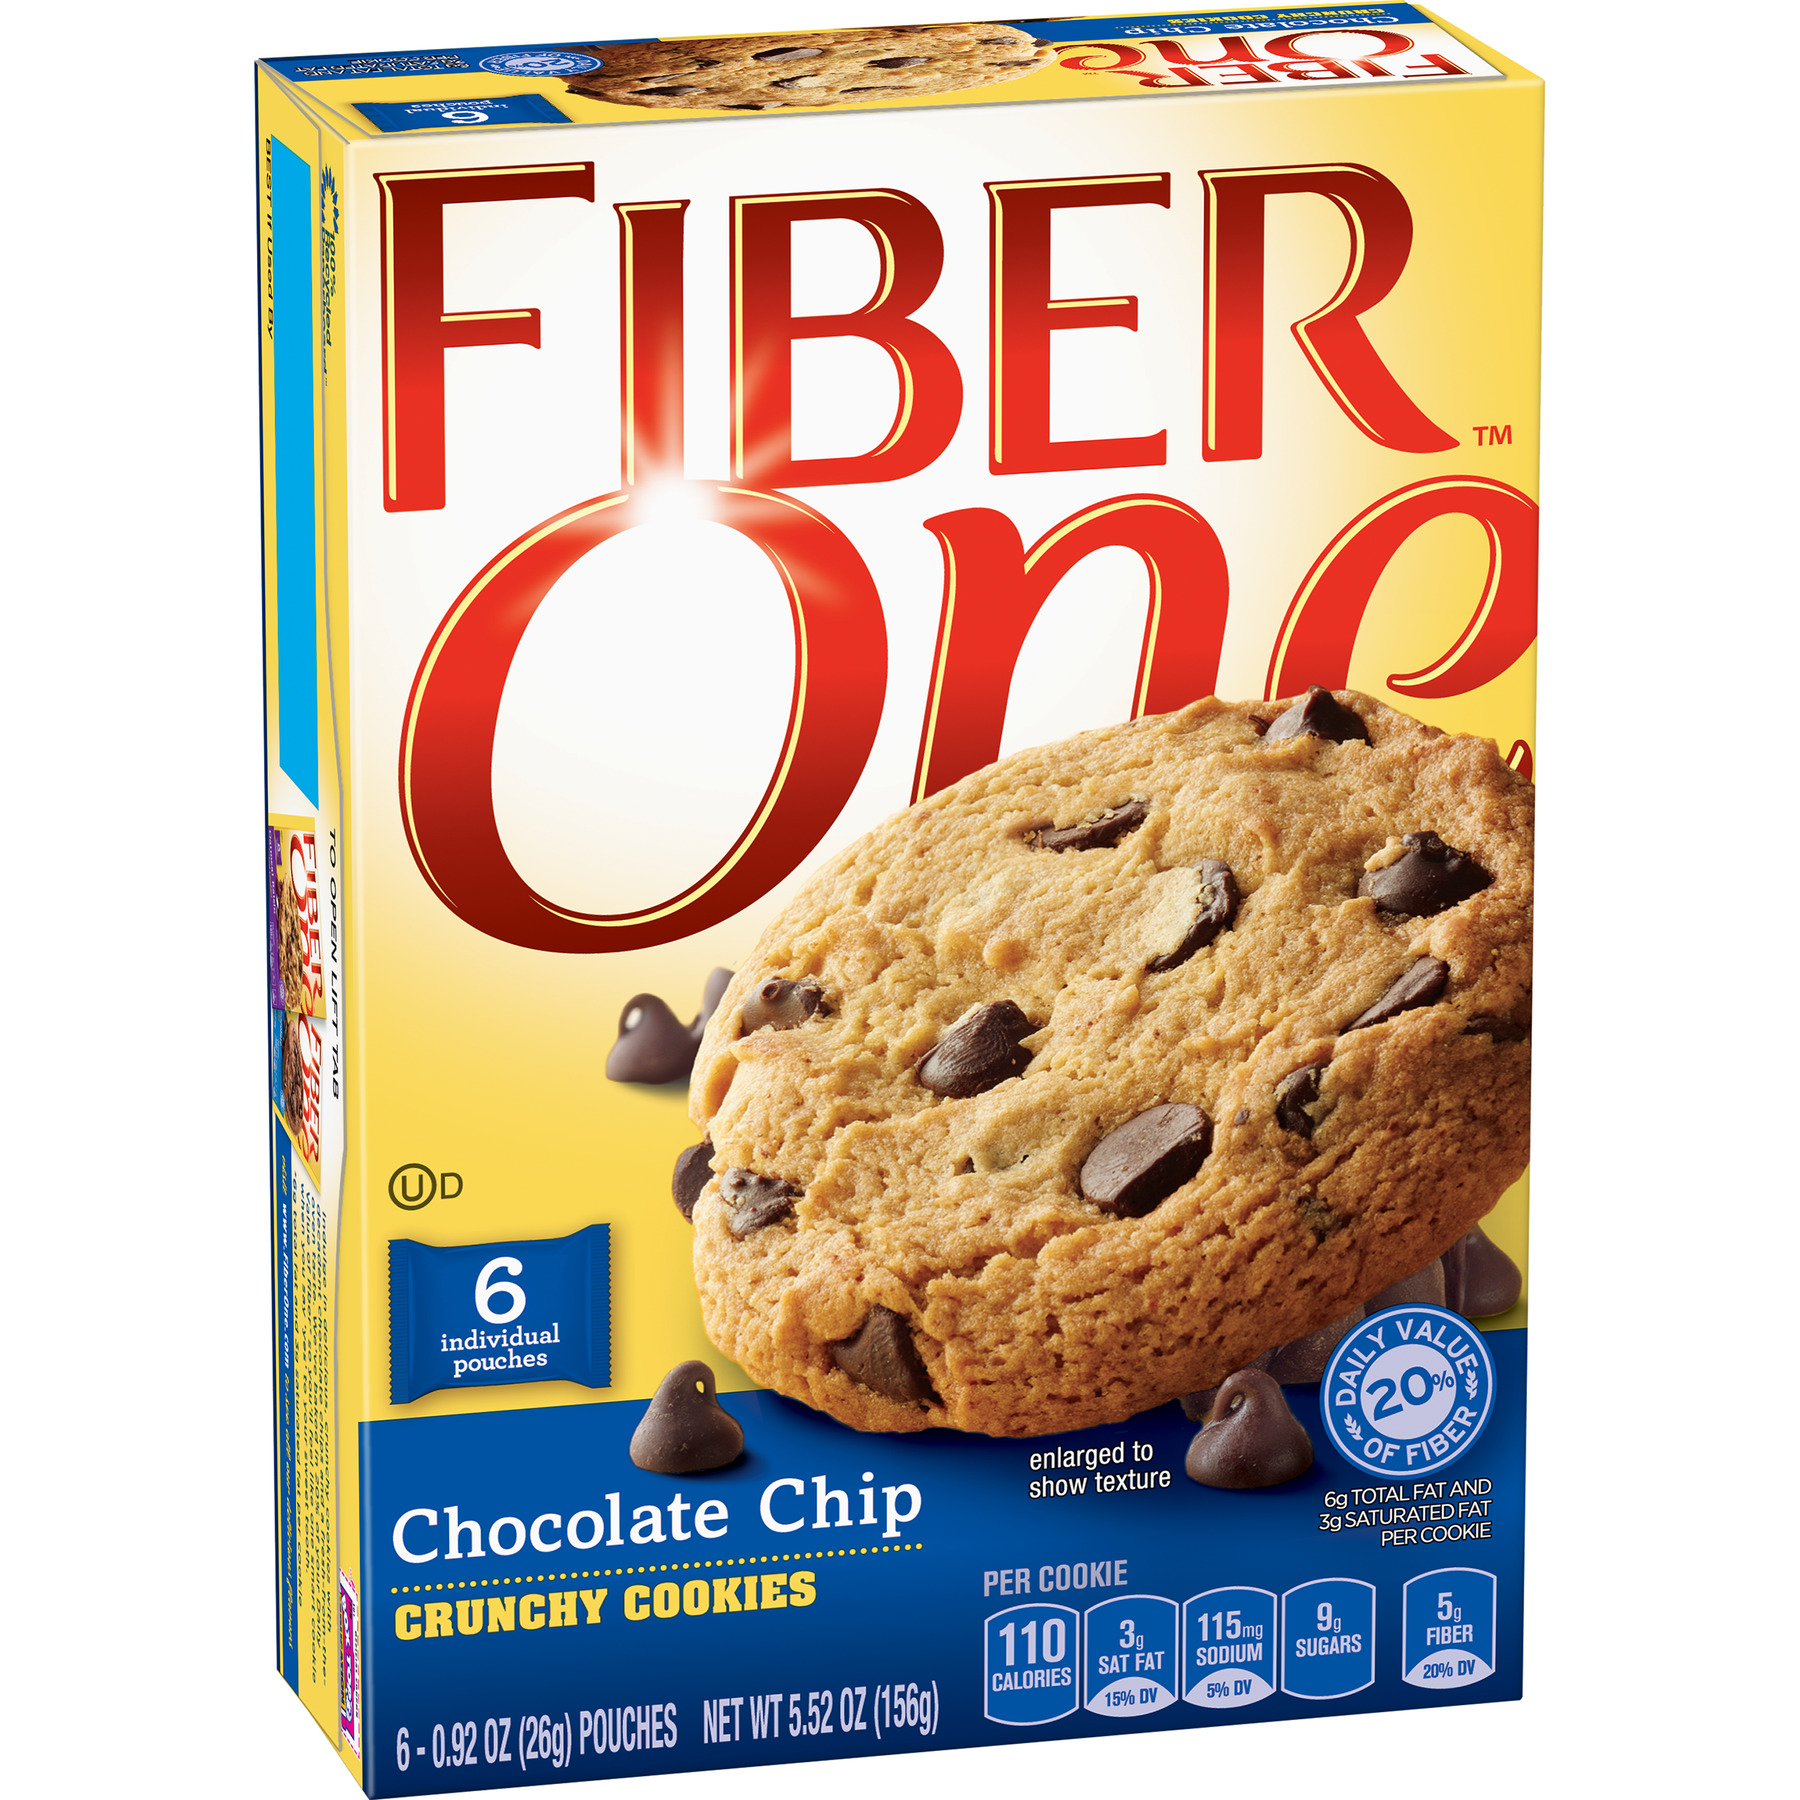 (2 Pack) Fiber One Chocolate Chip Crunchy Cookies, 5.52 oz Box